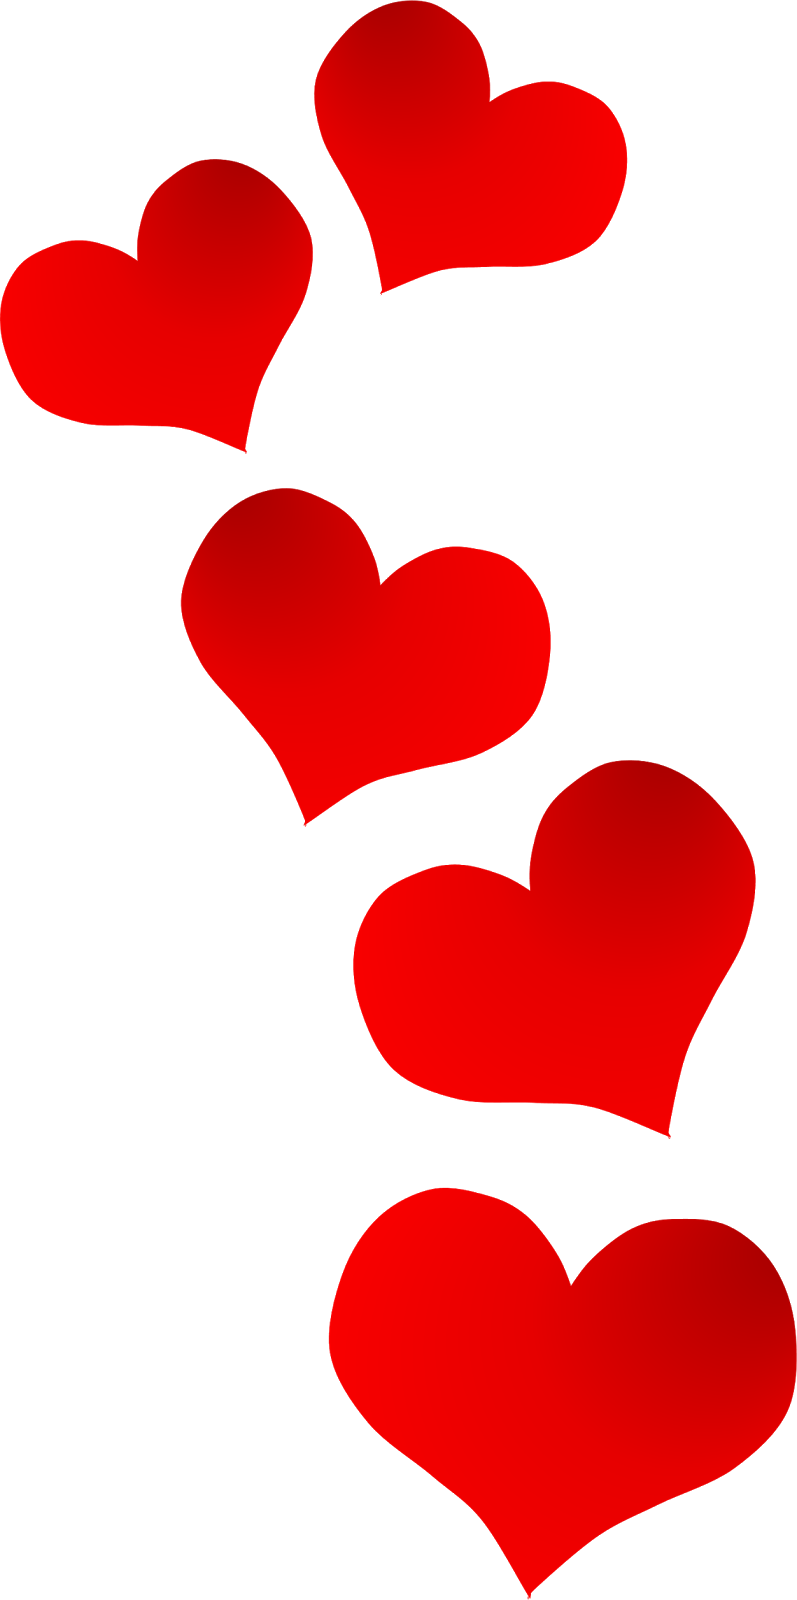 Michigan clipart heart. Image free cliparts collection